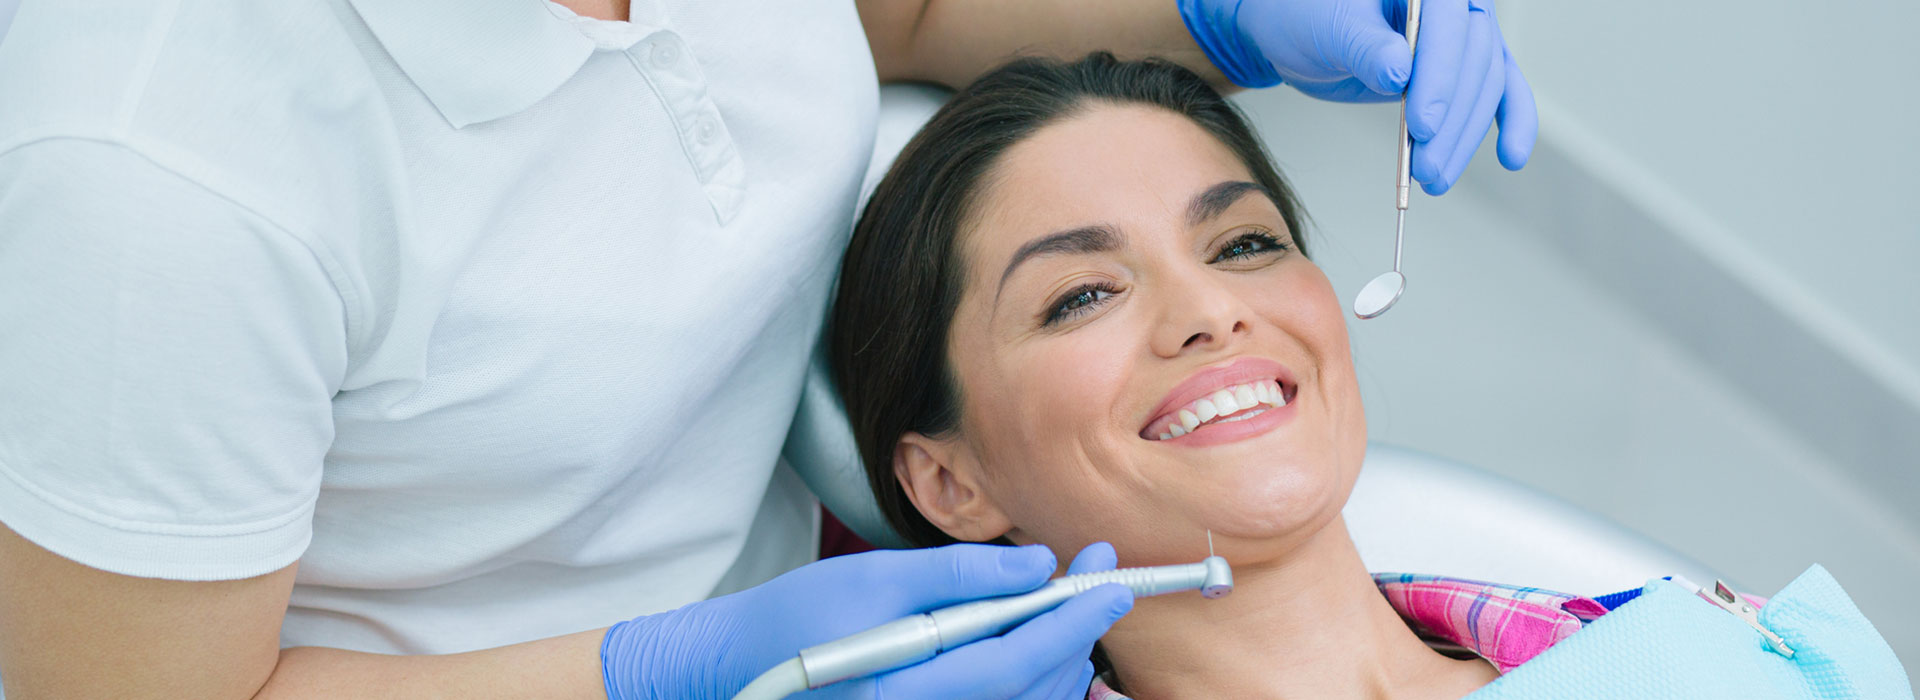 A beautiful woman is smiling at the dental